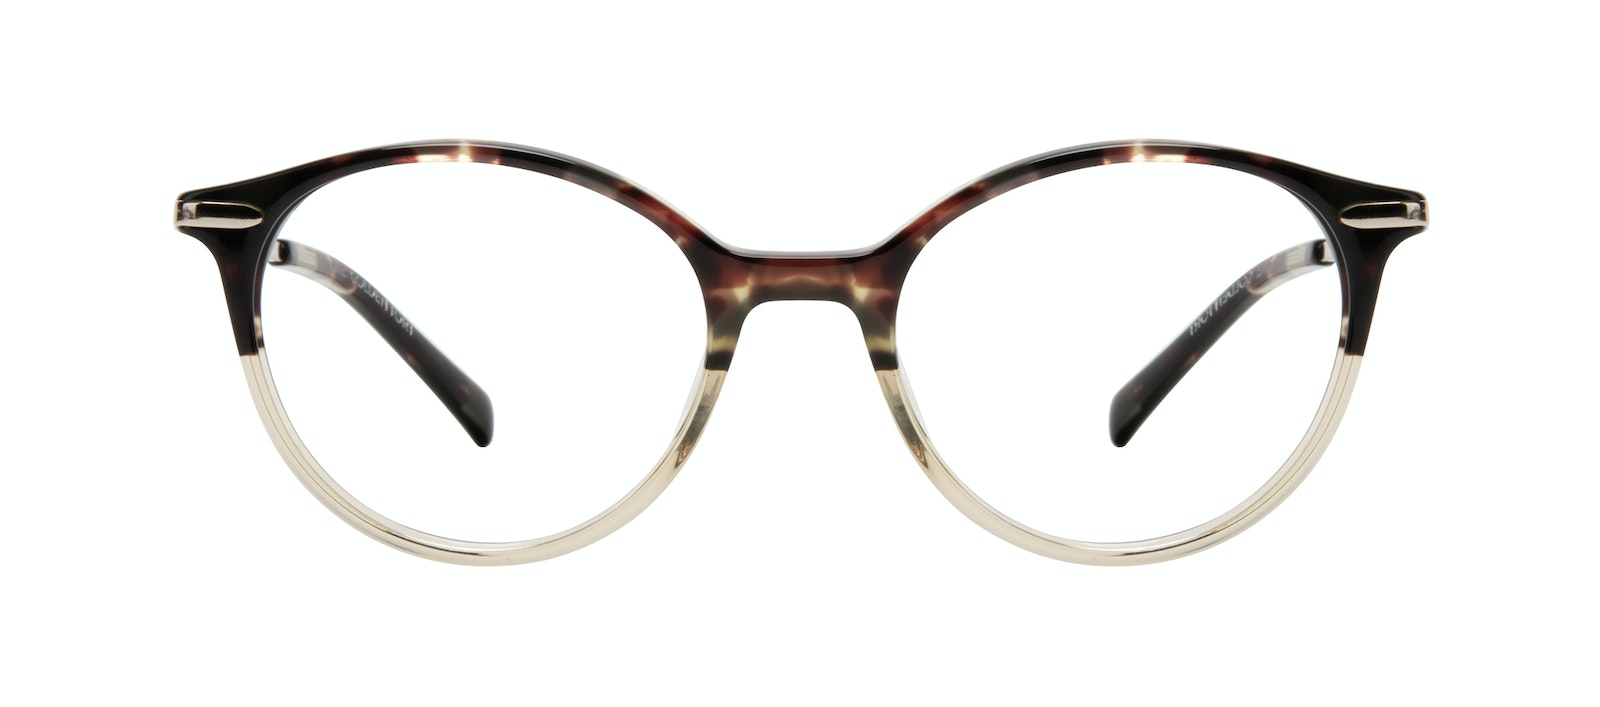 Affordable Fashion Glasses Round Eyeglasses Women One Golden Tort Front